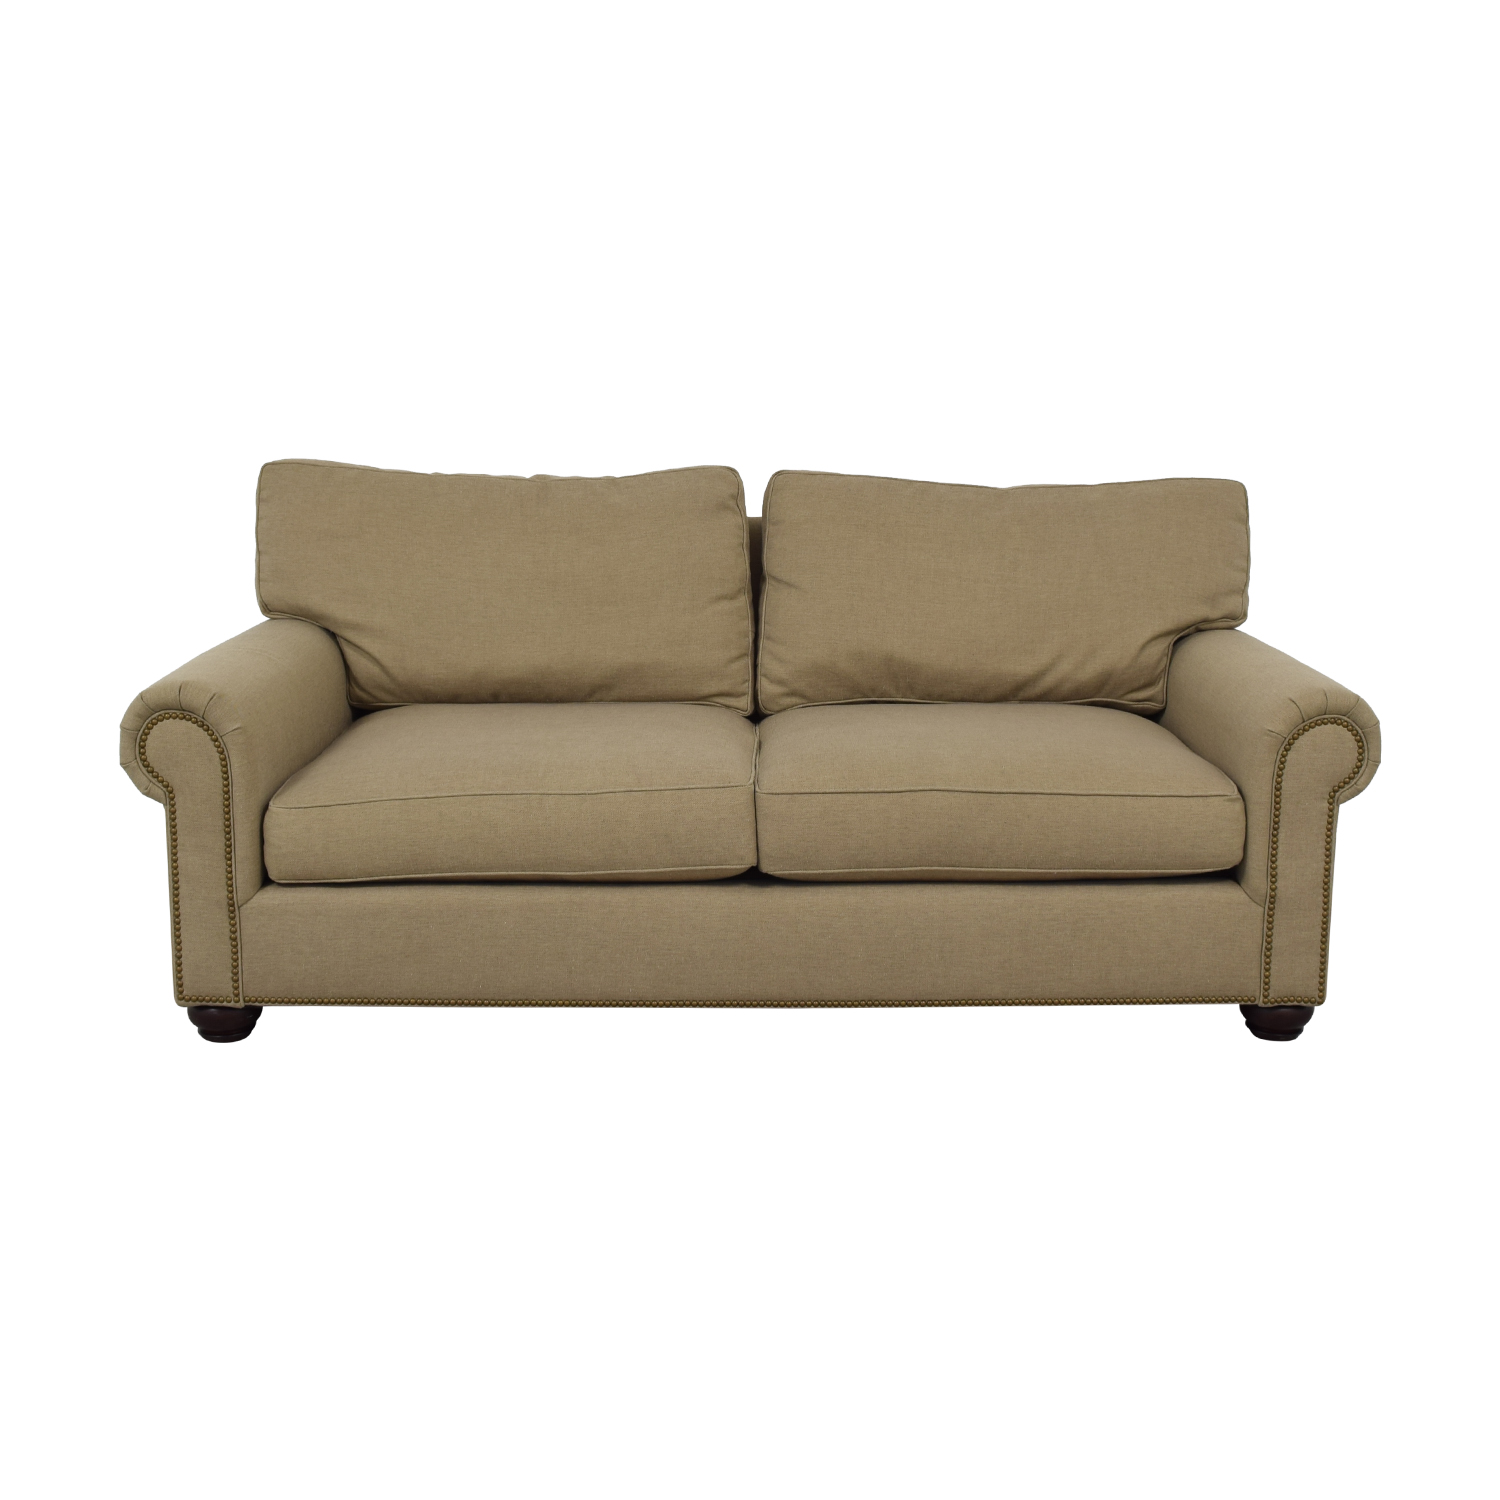 shop Pottery Barn Webster Beige Two-Cushion Couch Pottery Barn Sofas